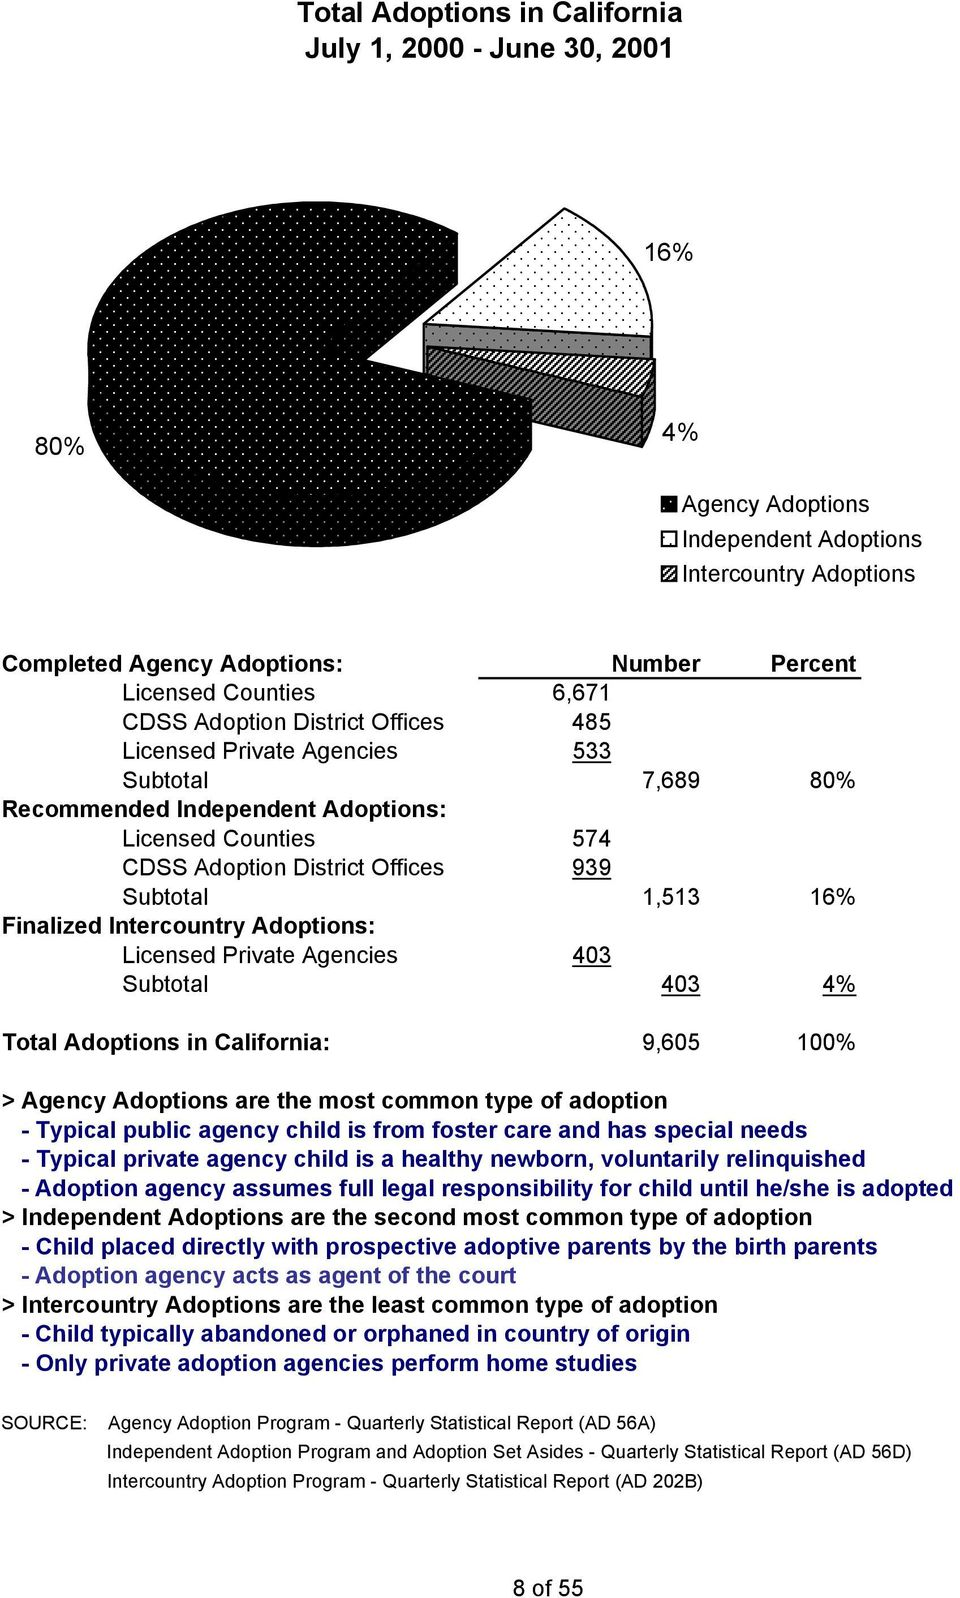 Counties 574 CDSS Adoption District Offices 939 Subtotal 1,513 16% Finalized Intercountry Adoptions: Licensed Private Agencies 403 Subtotal 403 4% Total Adoptions in California: 9,605 100% > Agency